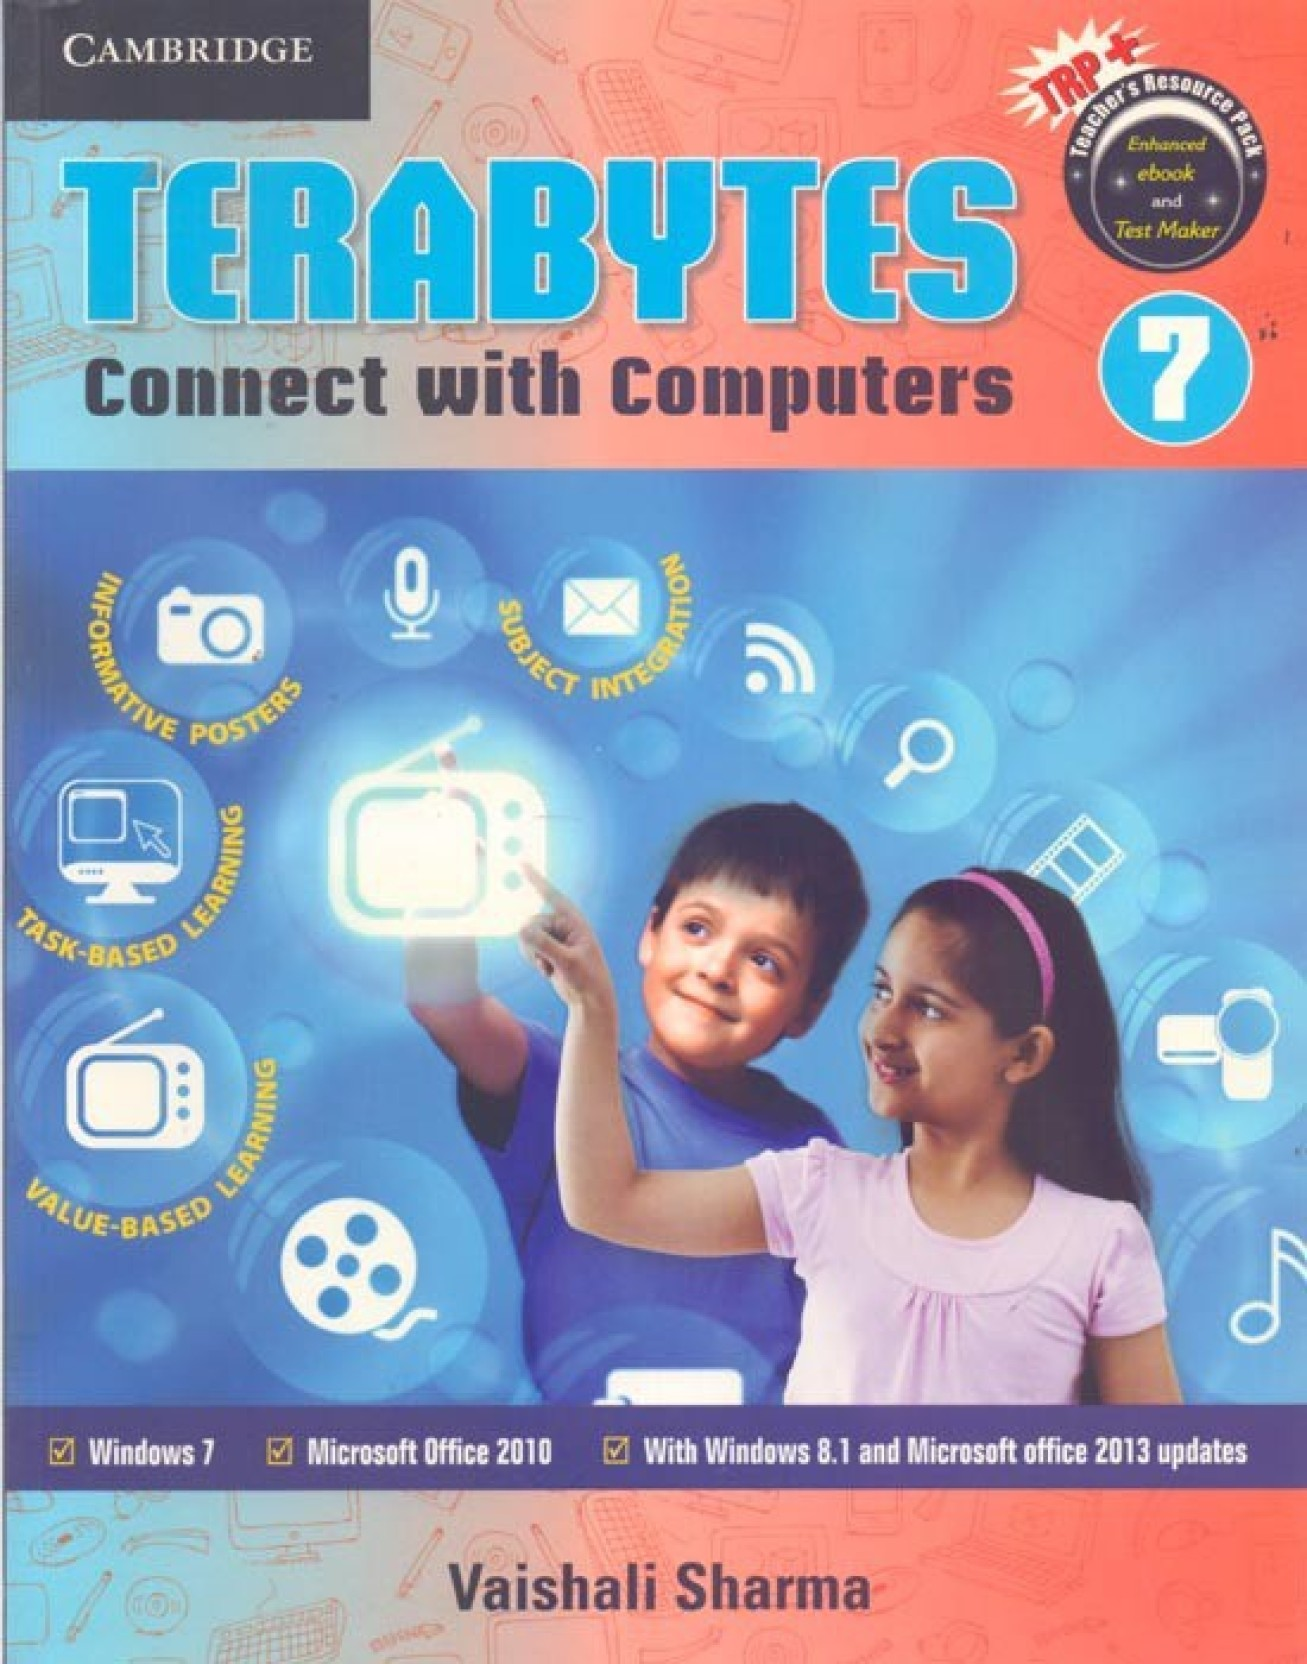 Terabytes Connect with Computers Class 7. ADD TO CART